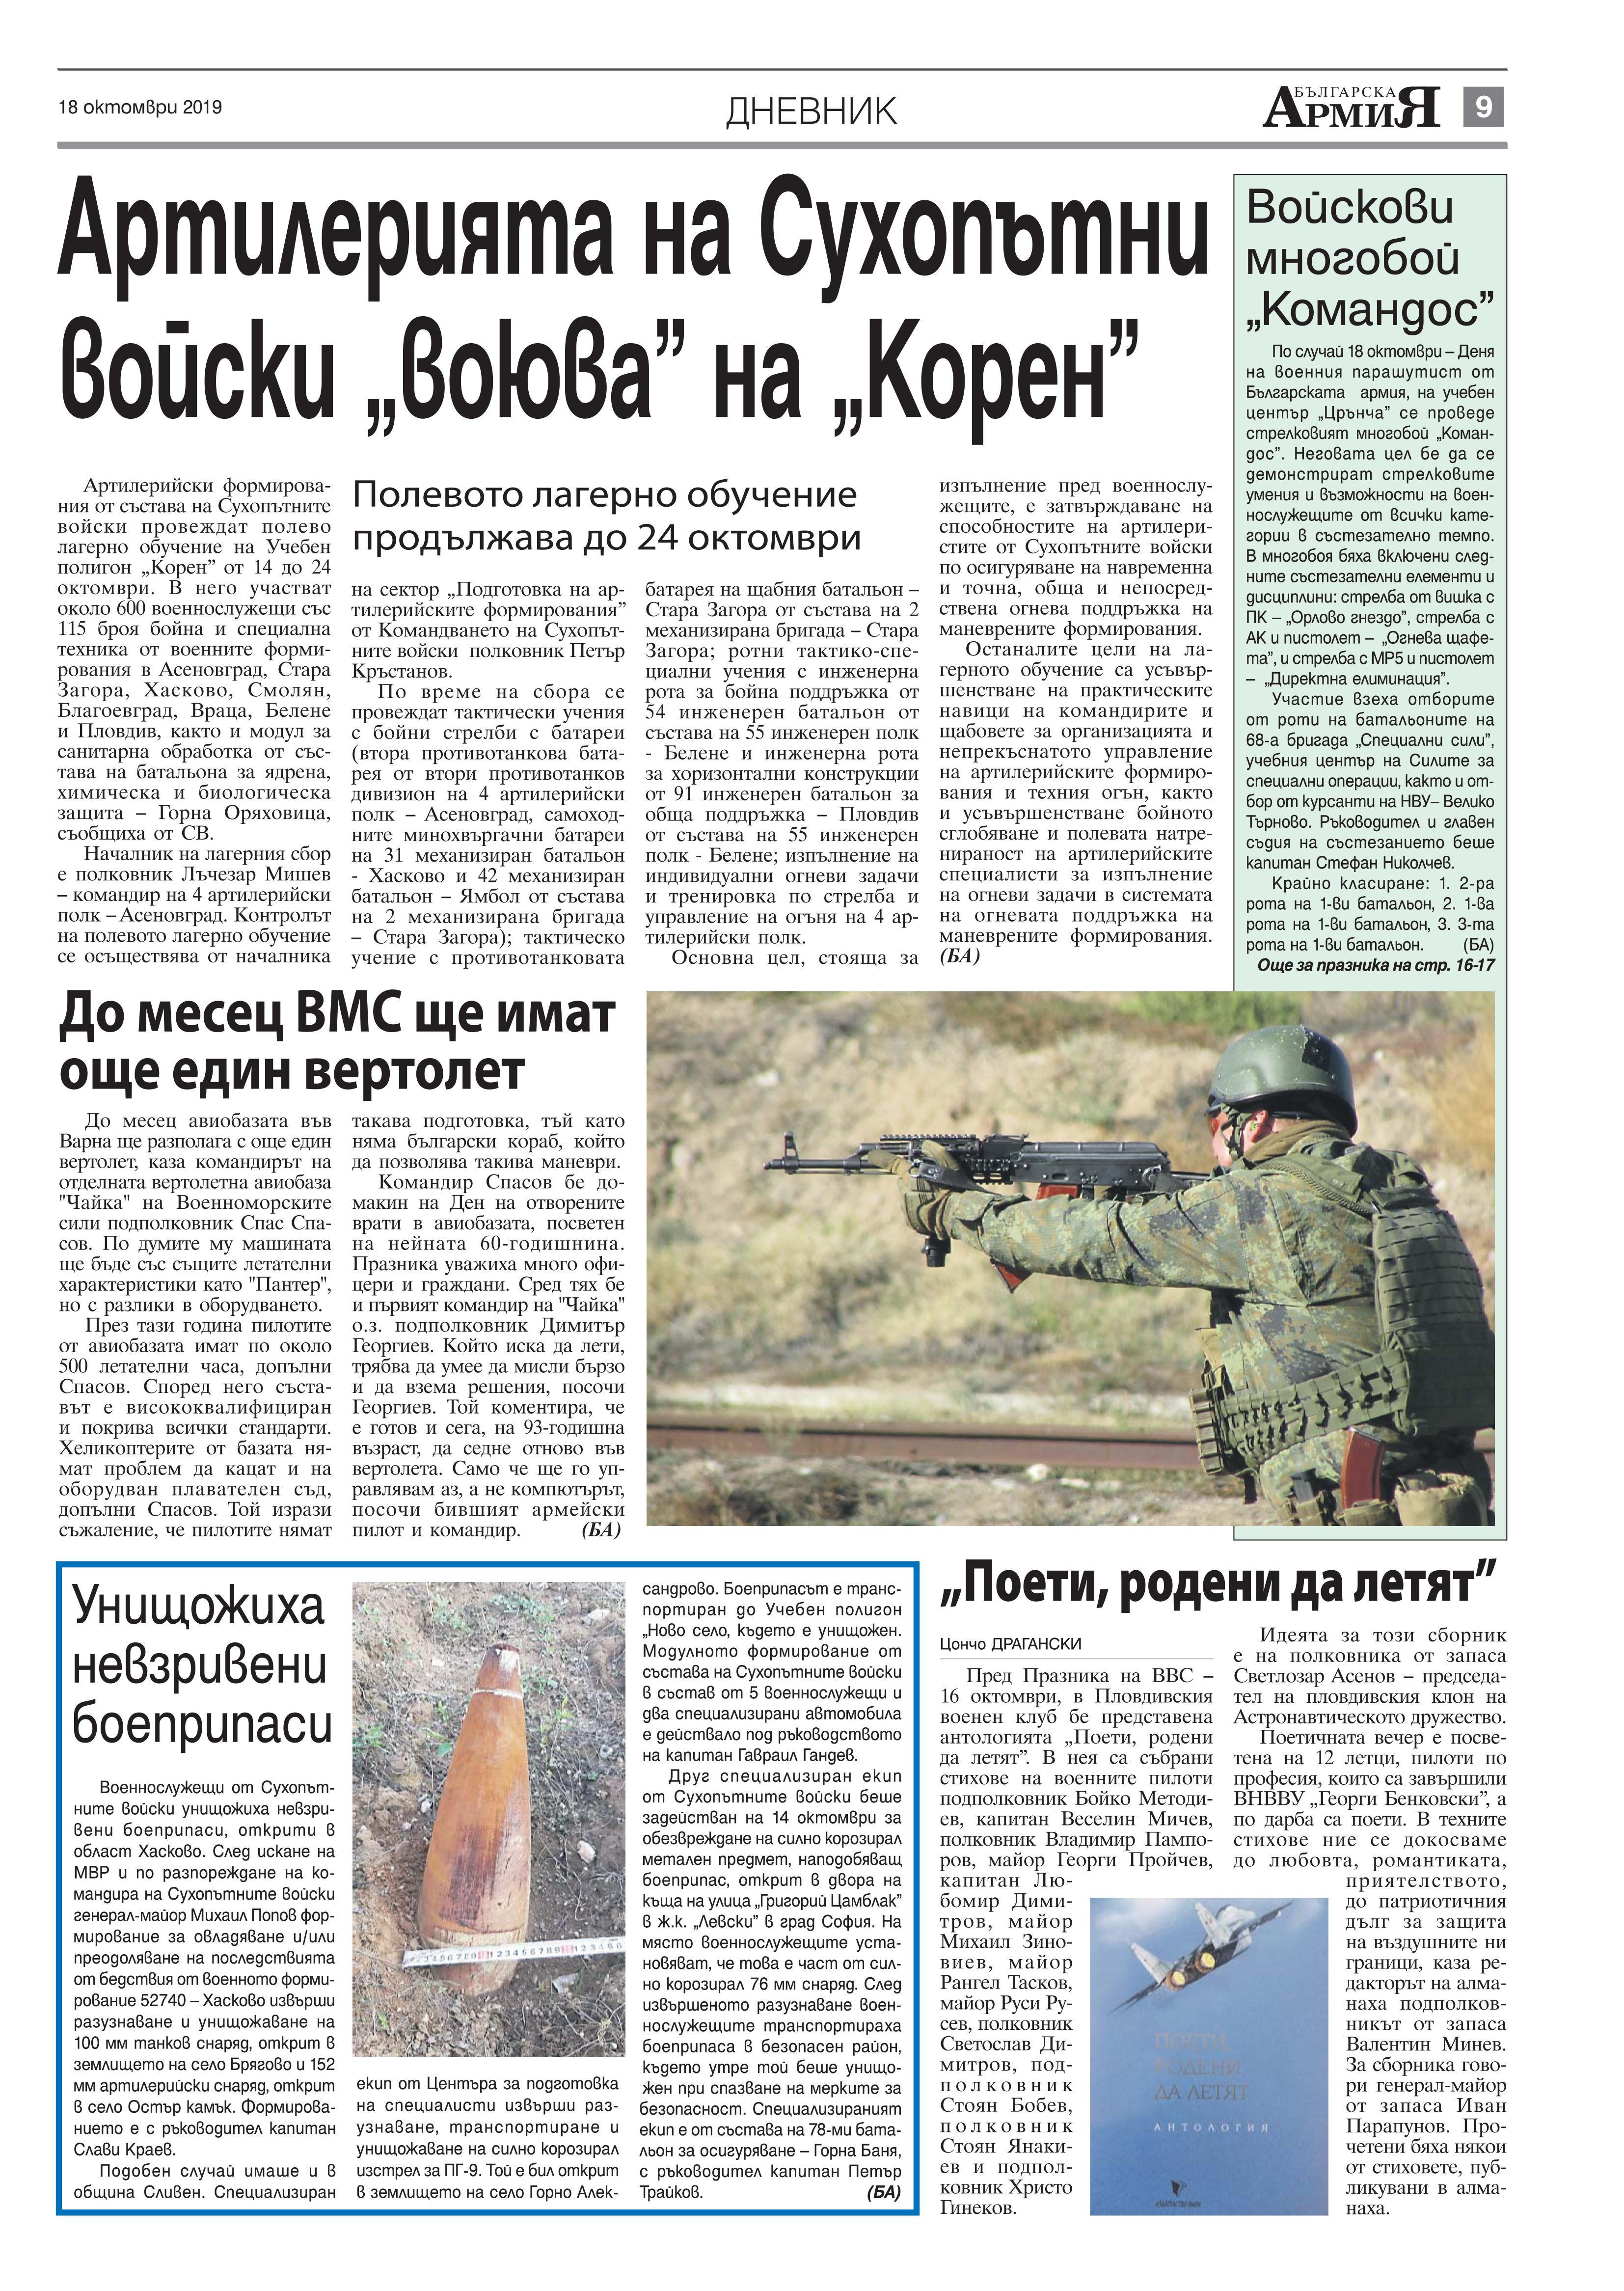 https://armymedia.bg/wp-content/uploads/2015/06/09.page1_-110.jpg